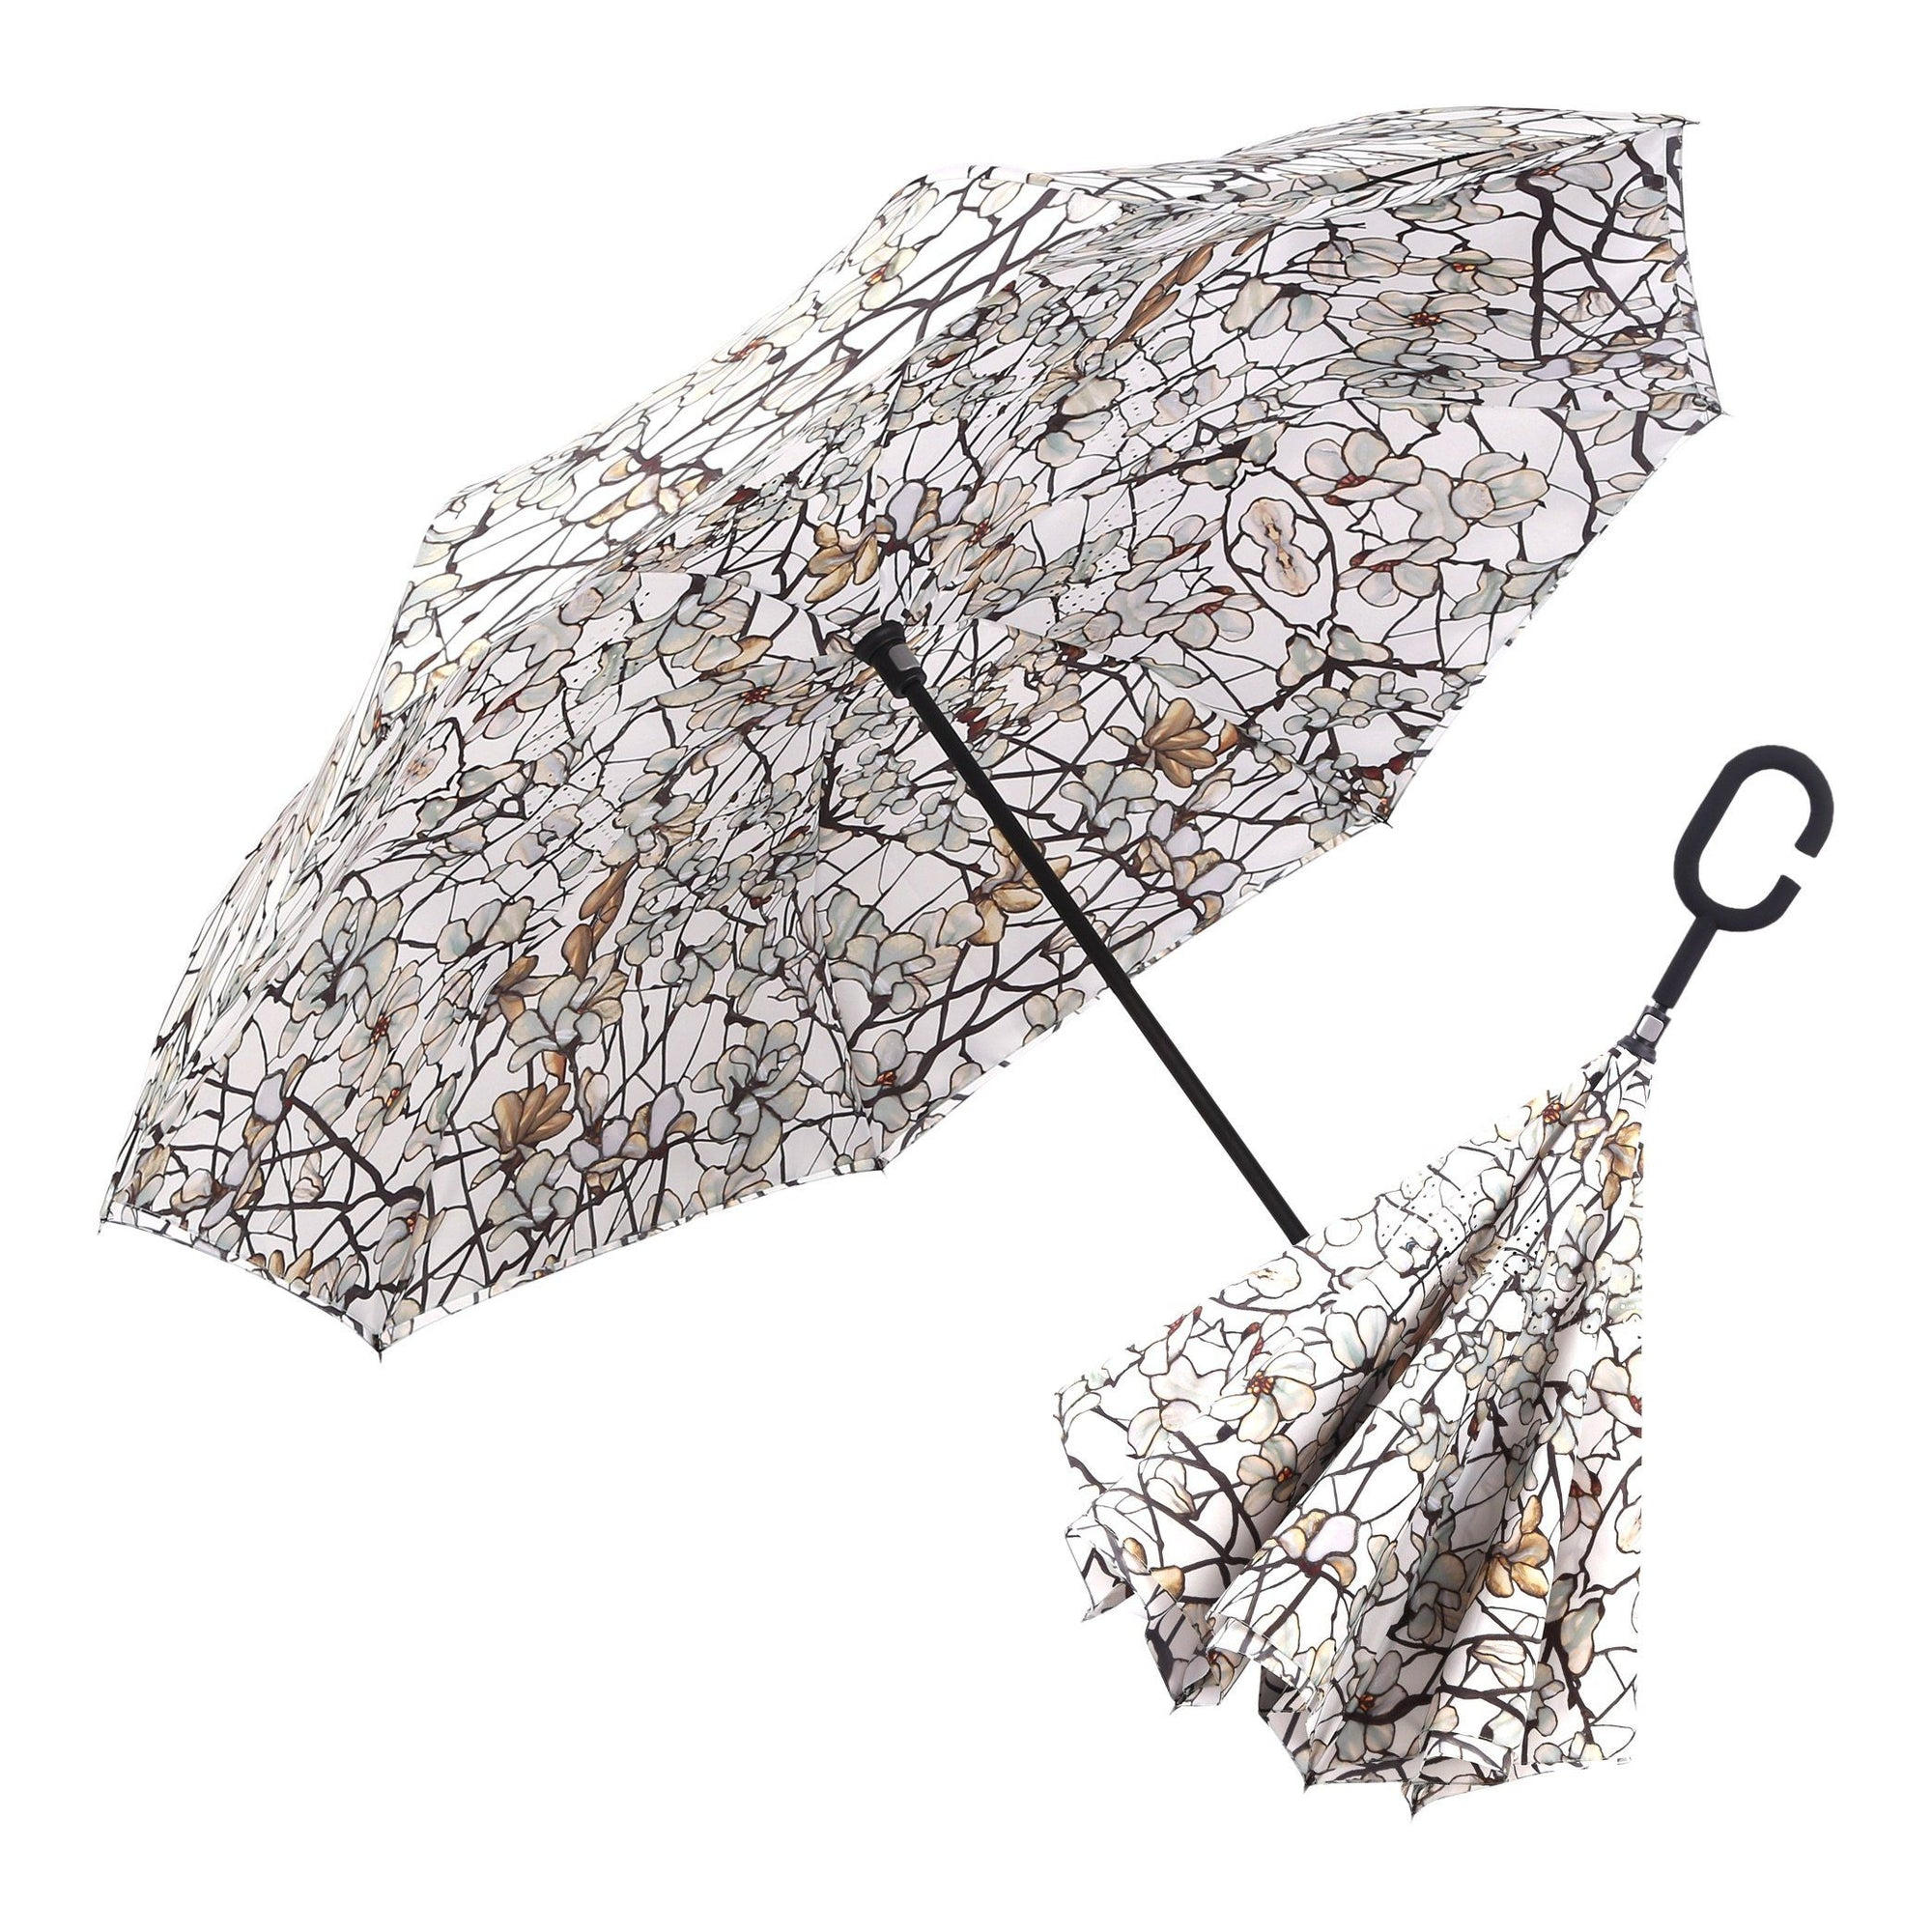 Image of a RainCaper Tiffany Magnolia inverted umbrella shown both open and closed